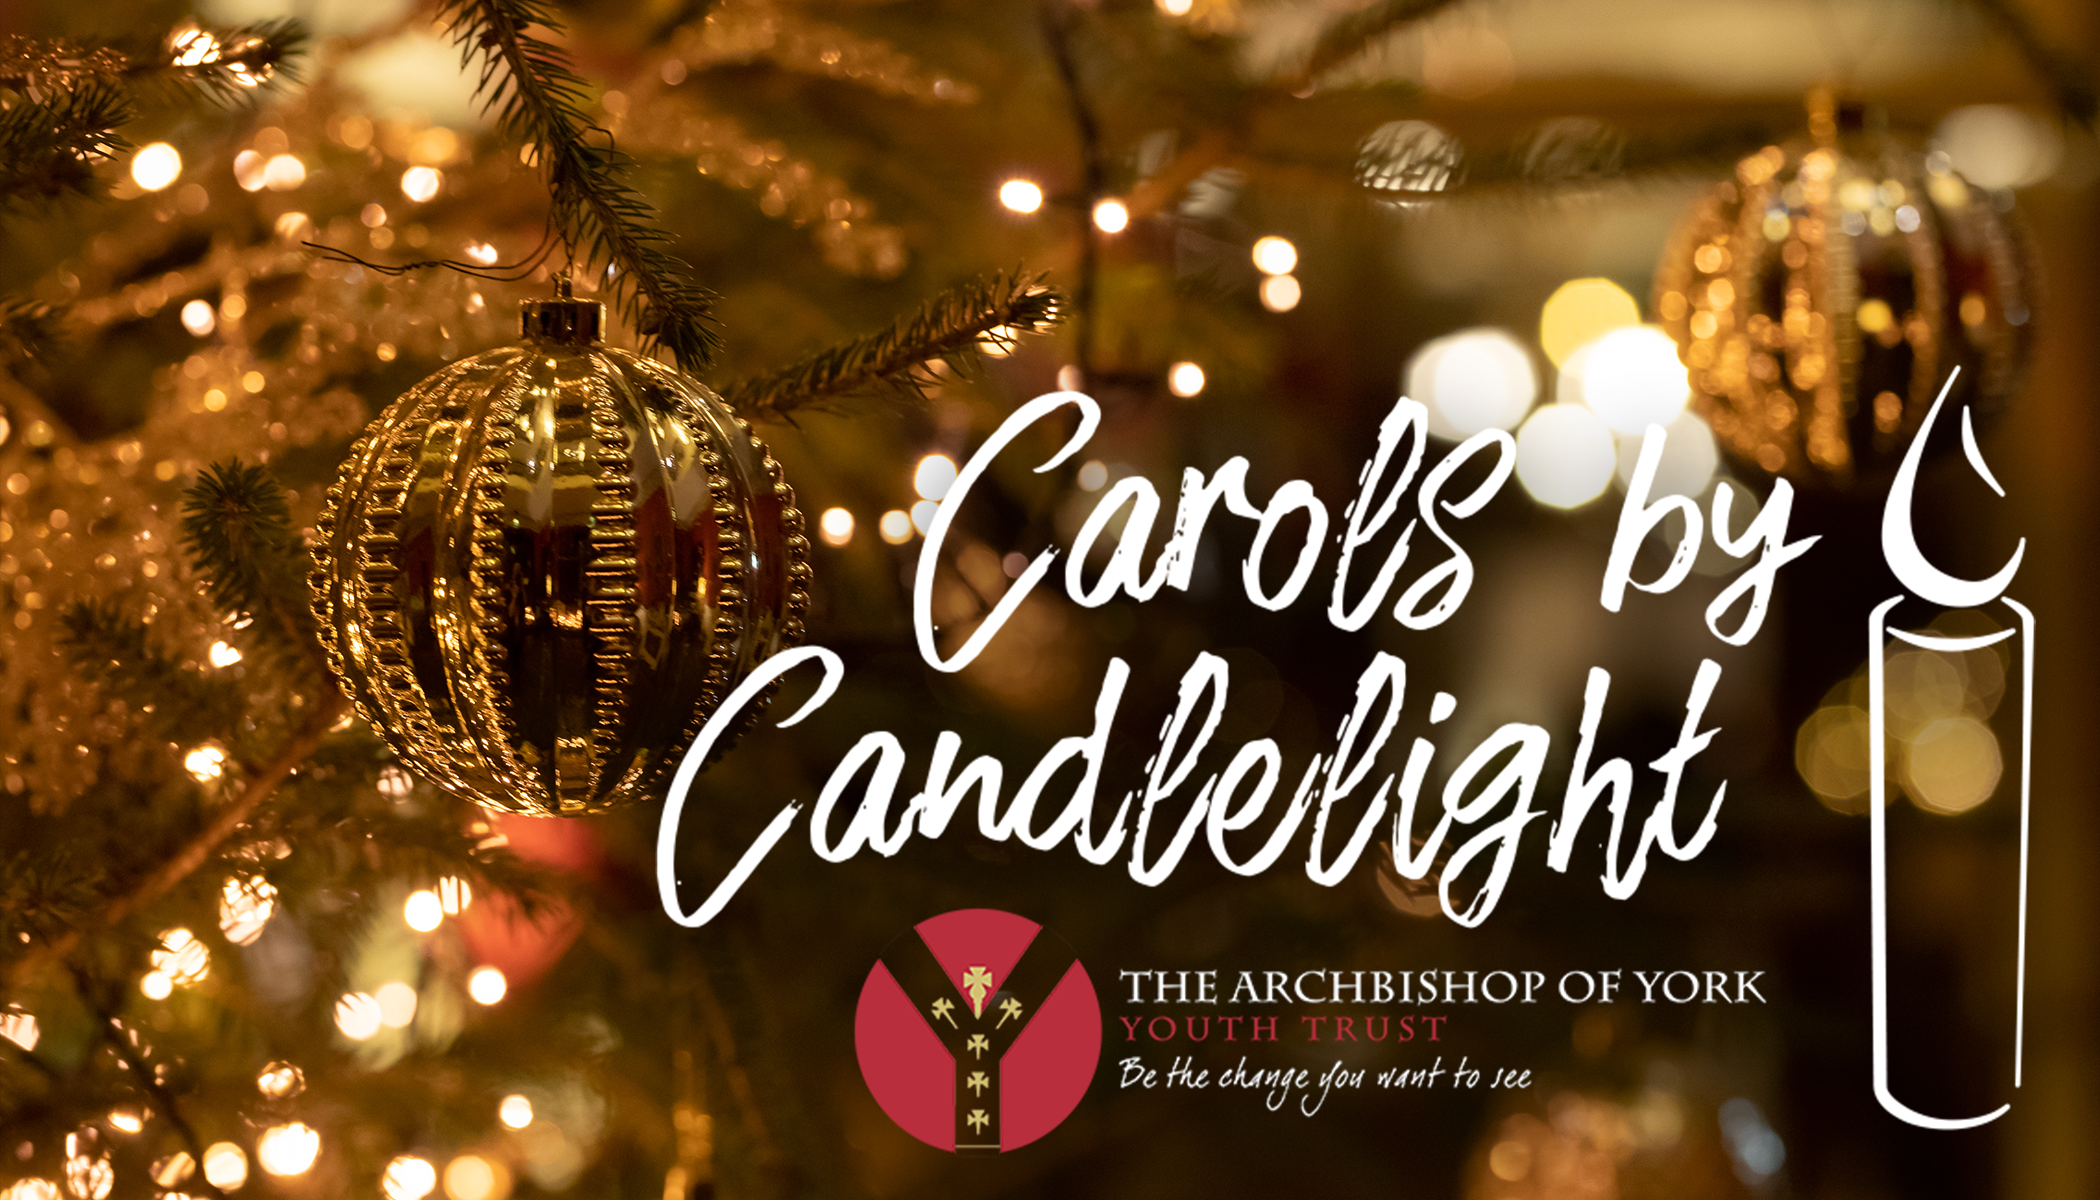 Archbishop's Youth Trust Takes Carols Online, with Swinton Estate